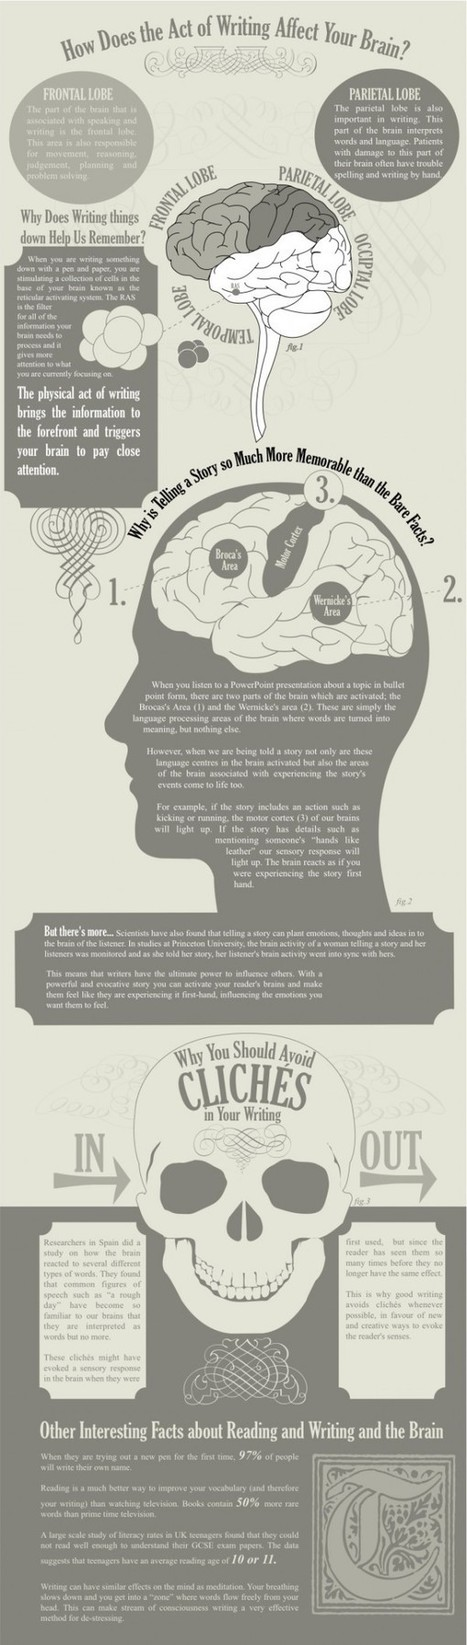 How Does the Act of Writing Affect Your Brain? - Visual News | Copywriting | Scoop.it